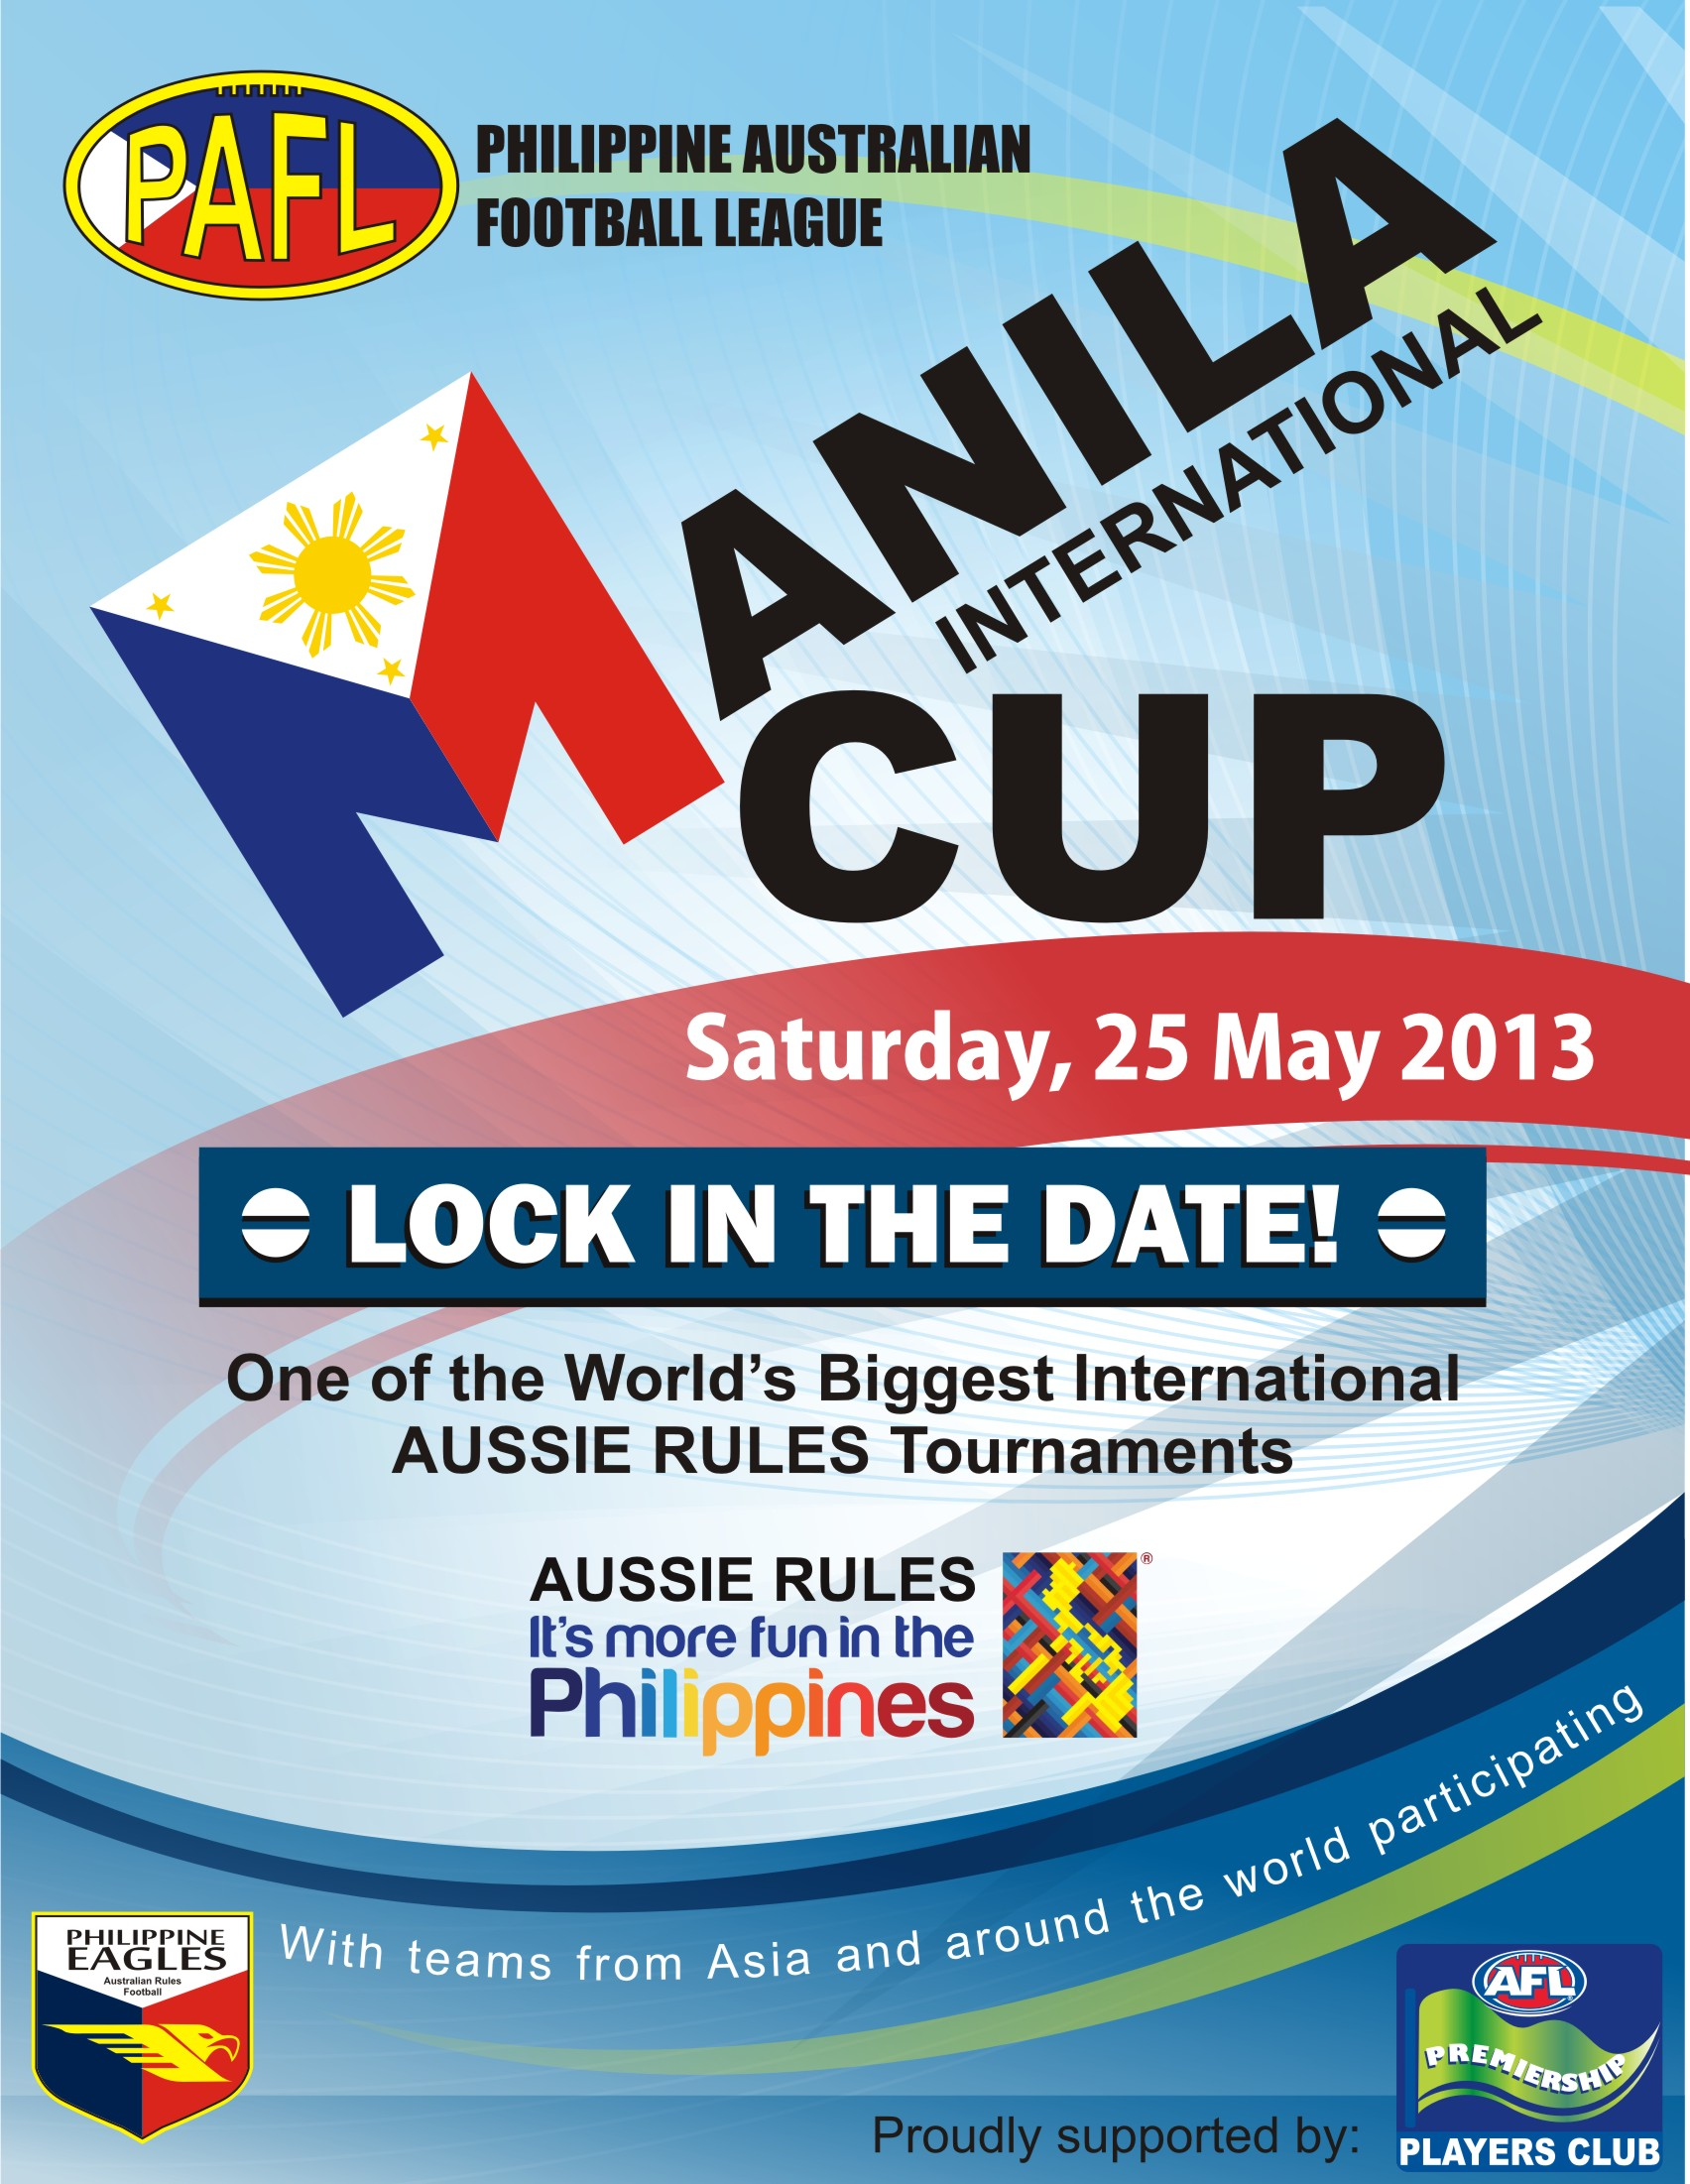 The 2013 Manila Cup Poster